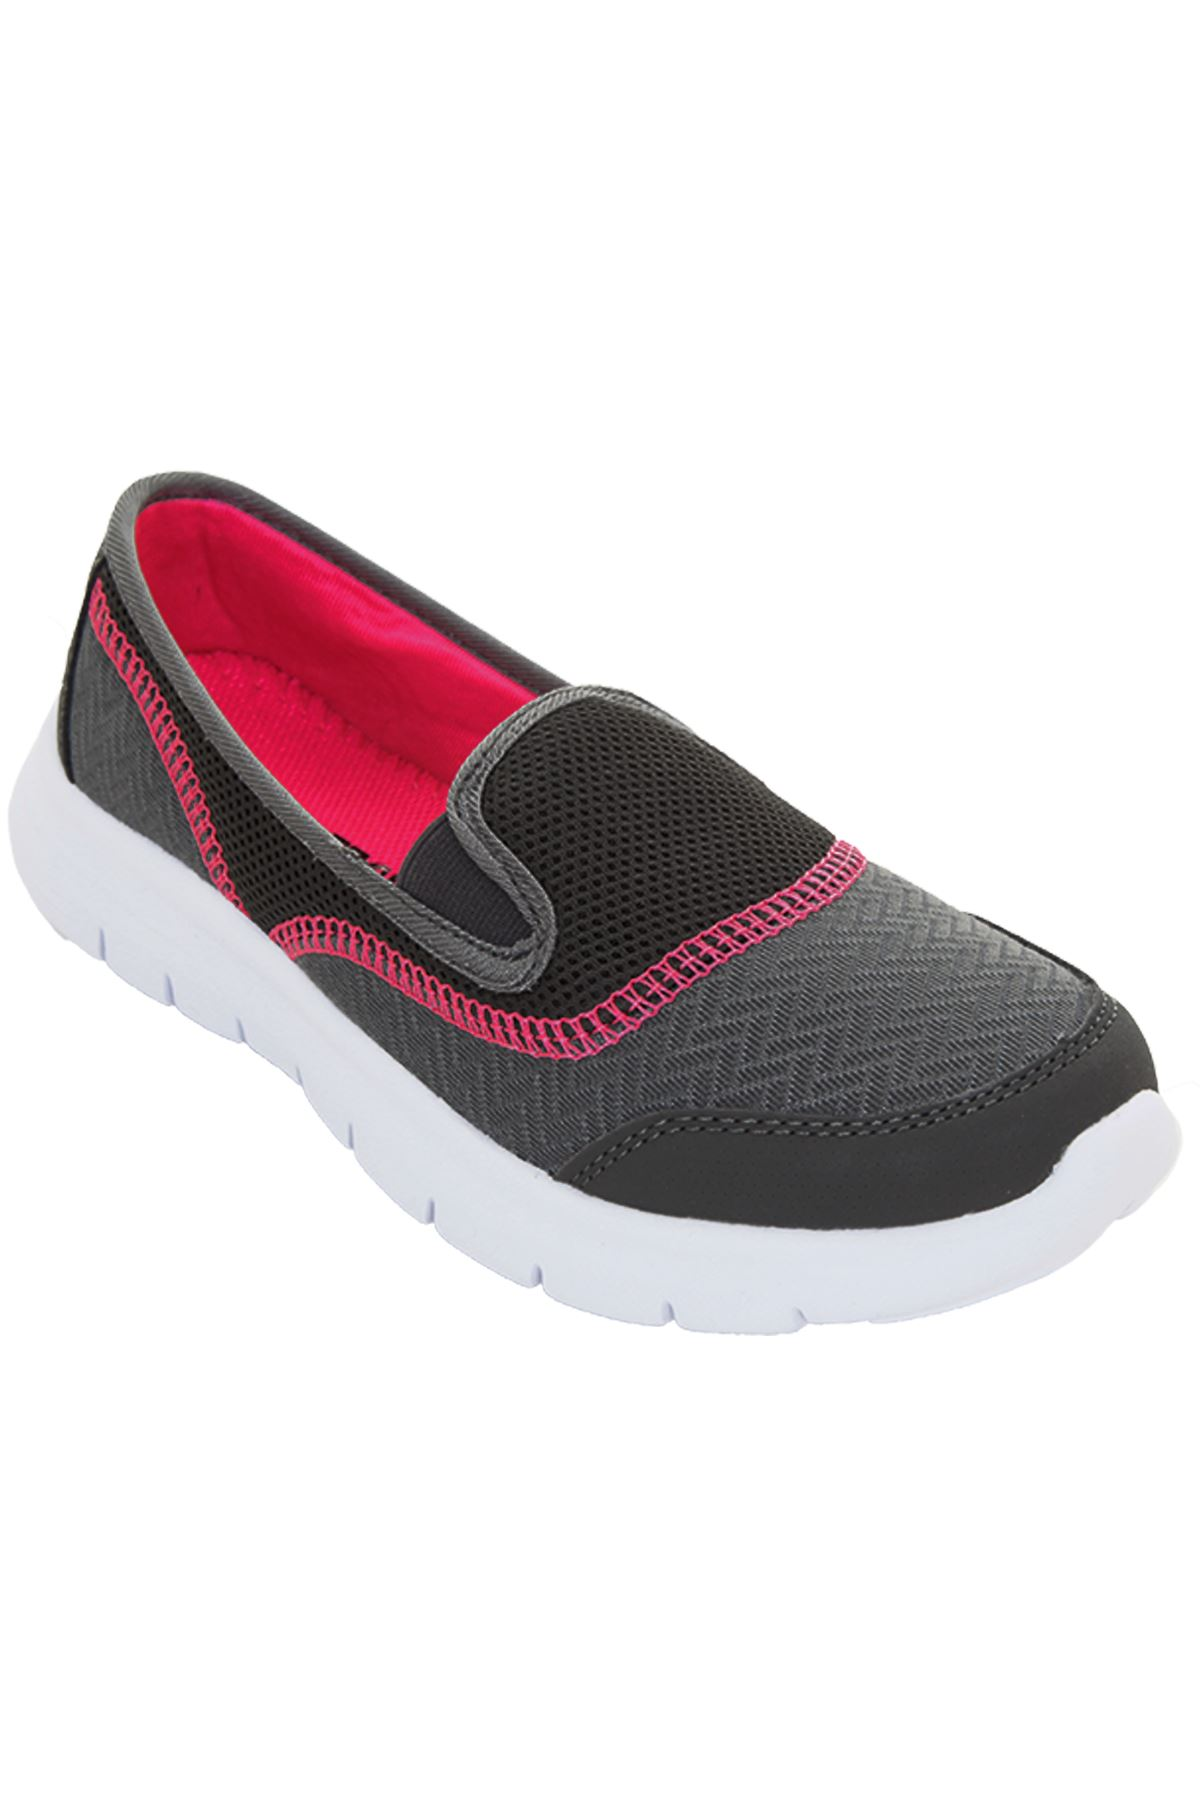 lightweight pumps slip on comfy flat sport